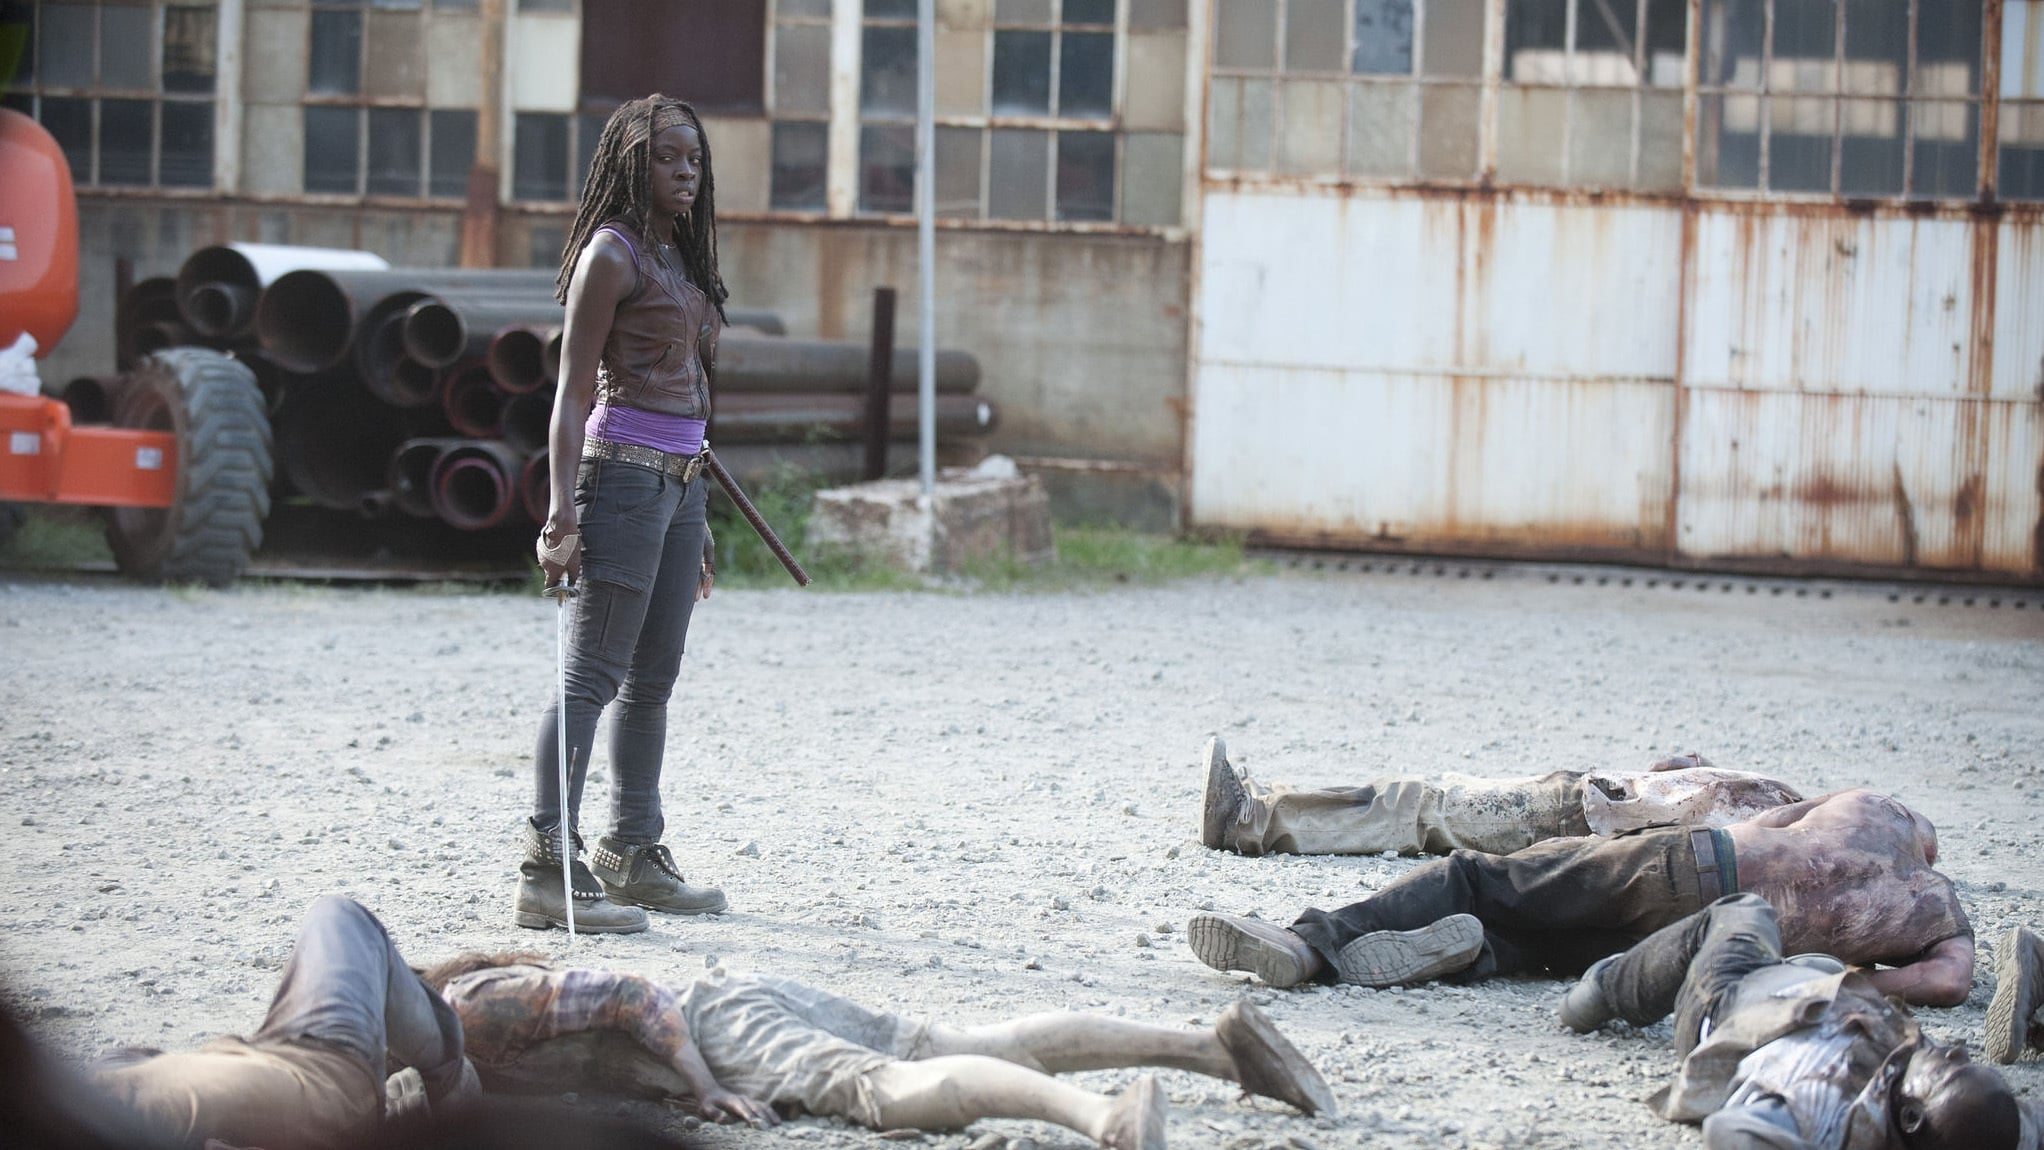 how to watch full episodes of walking dead